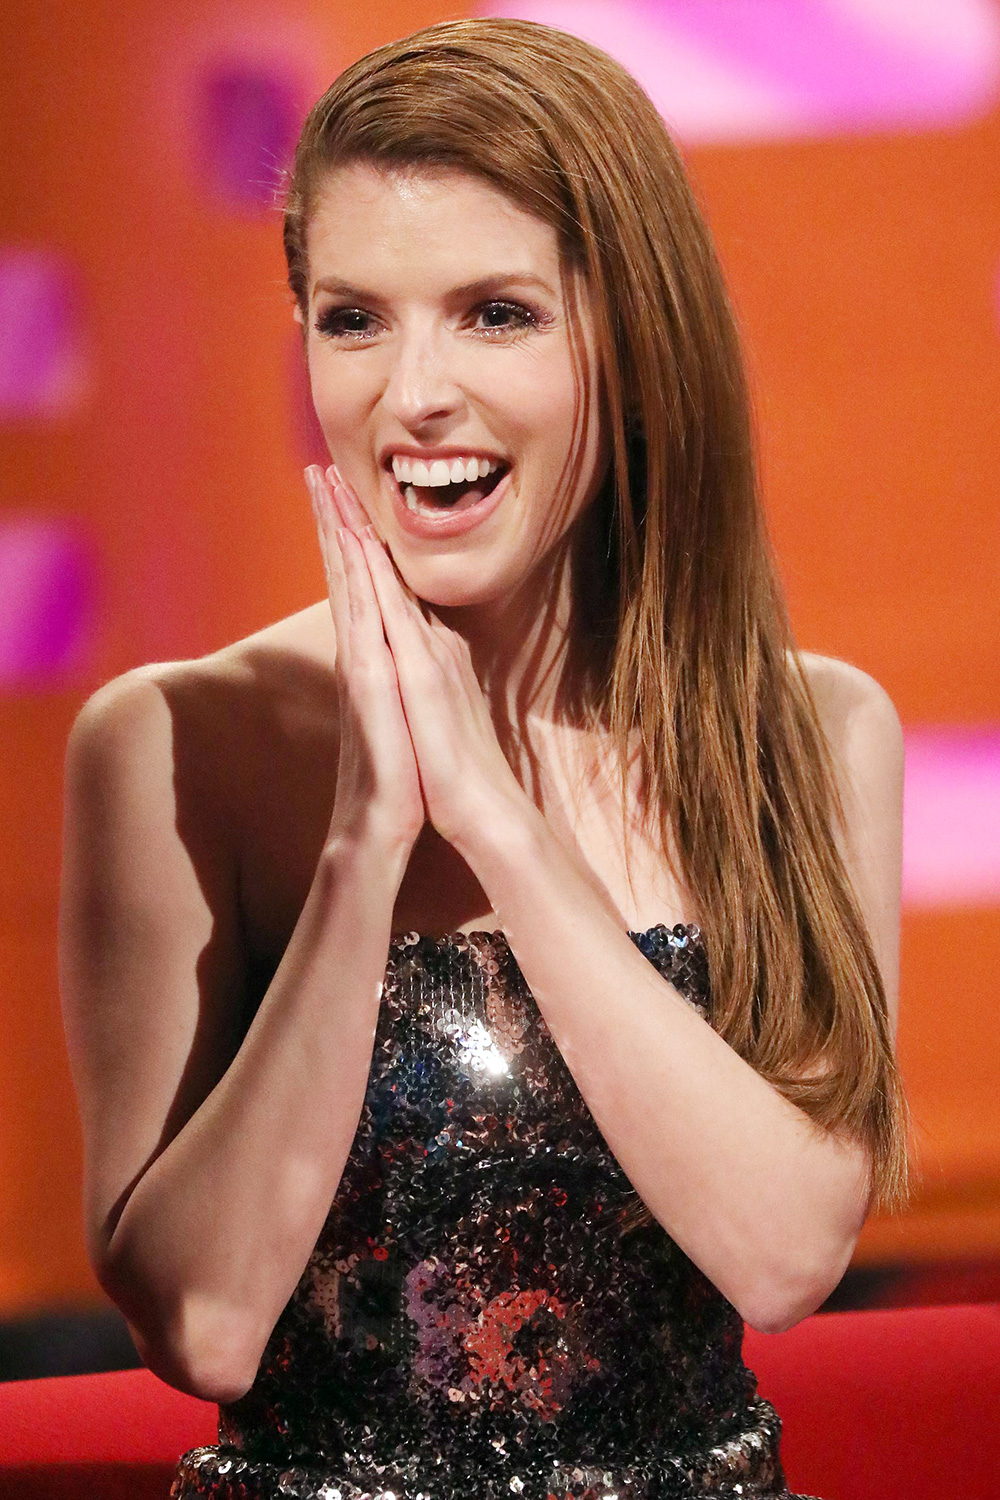 Anna Kendrick during the filming for the Graham Norton Show at BBC Studioworks 6 Television Centre, Wood Lane, London, to be aired on BBC One on Friday evening